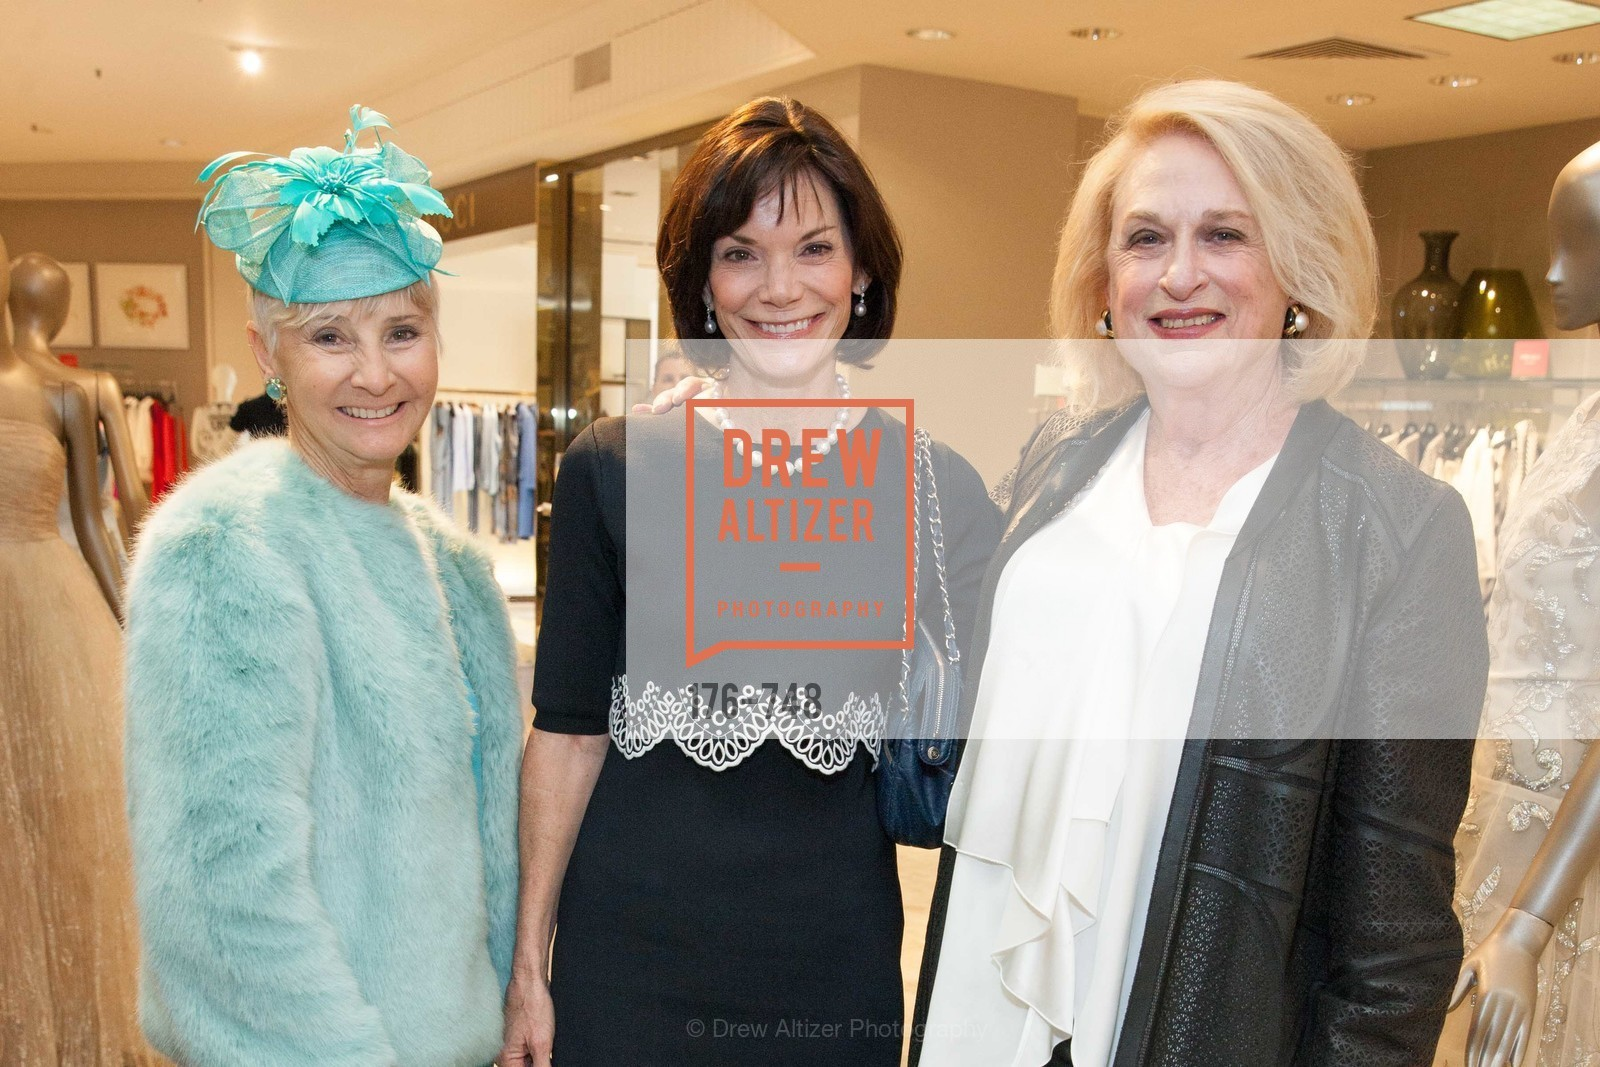 Gail Glasser, Lisa Mooring, Sally Debenham, PETER COPPING Makes Personal Appearance at SAKS FIFTH AVENUE, US, May 21st, 2015,Drew Altizer, Drew Altizer Photography, full-service agency, private events, San Francisco photographer, photographer california